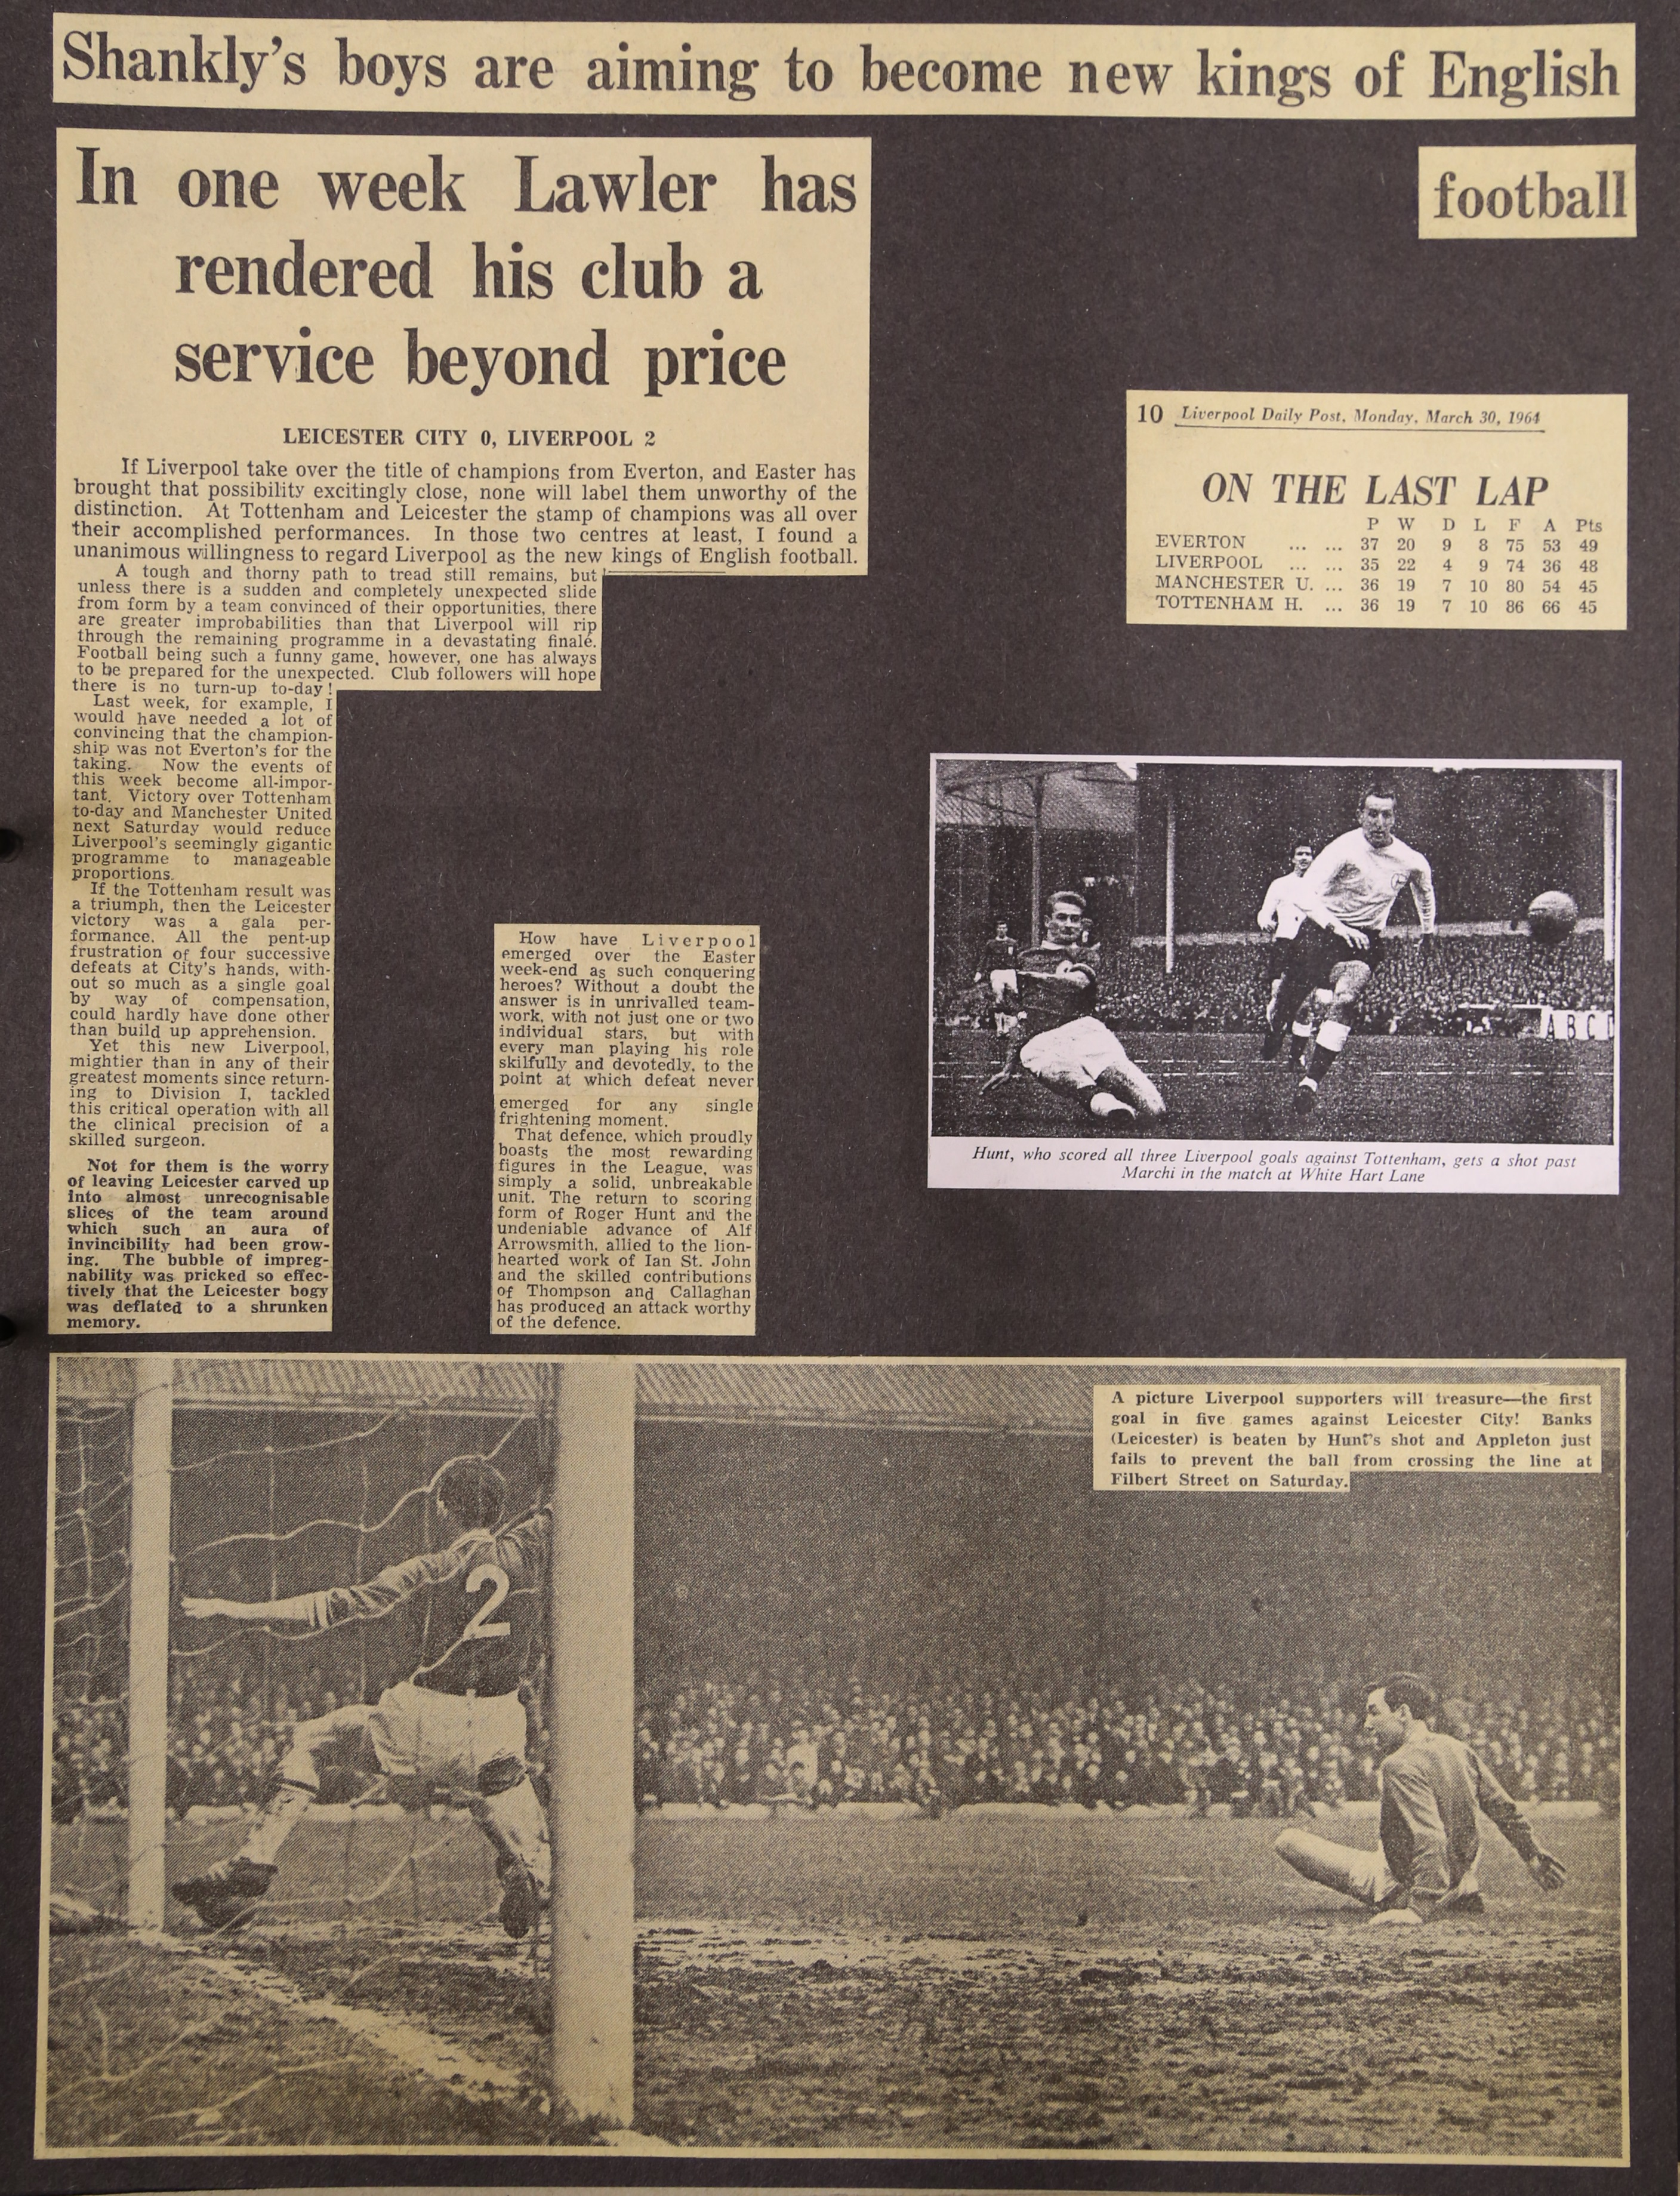 In one week Lawler has rendered his club service beyond price - 28 March 1964